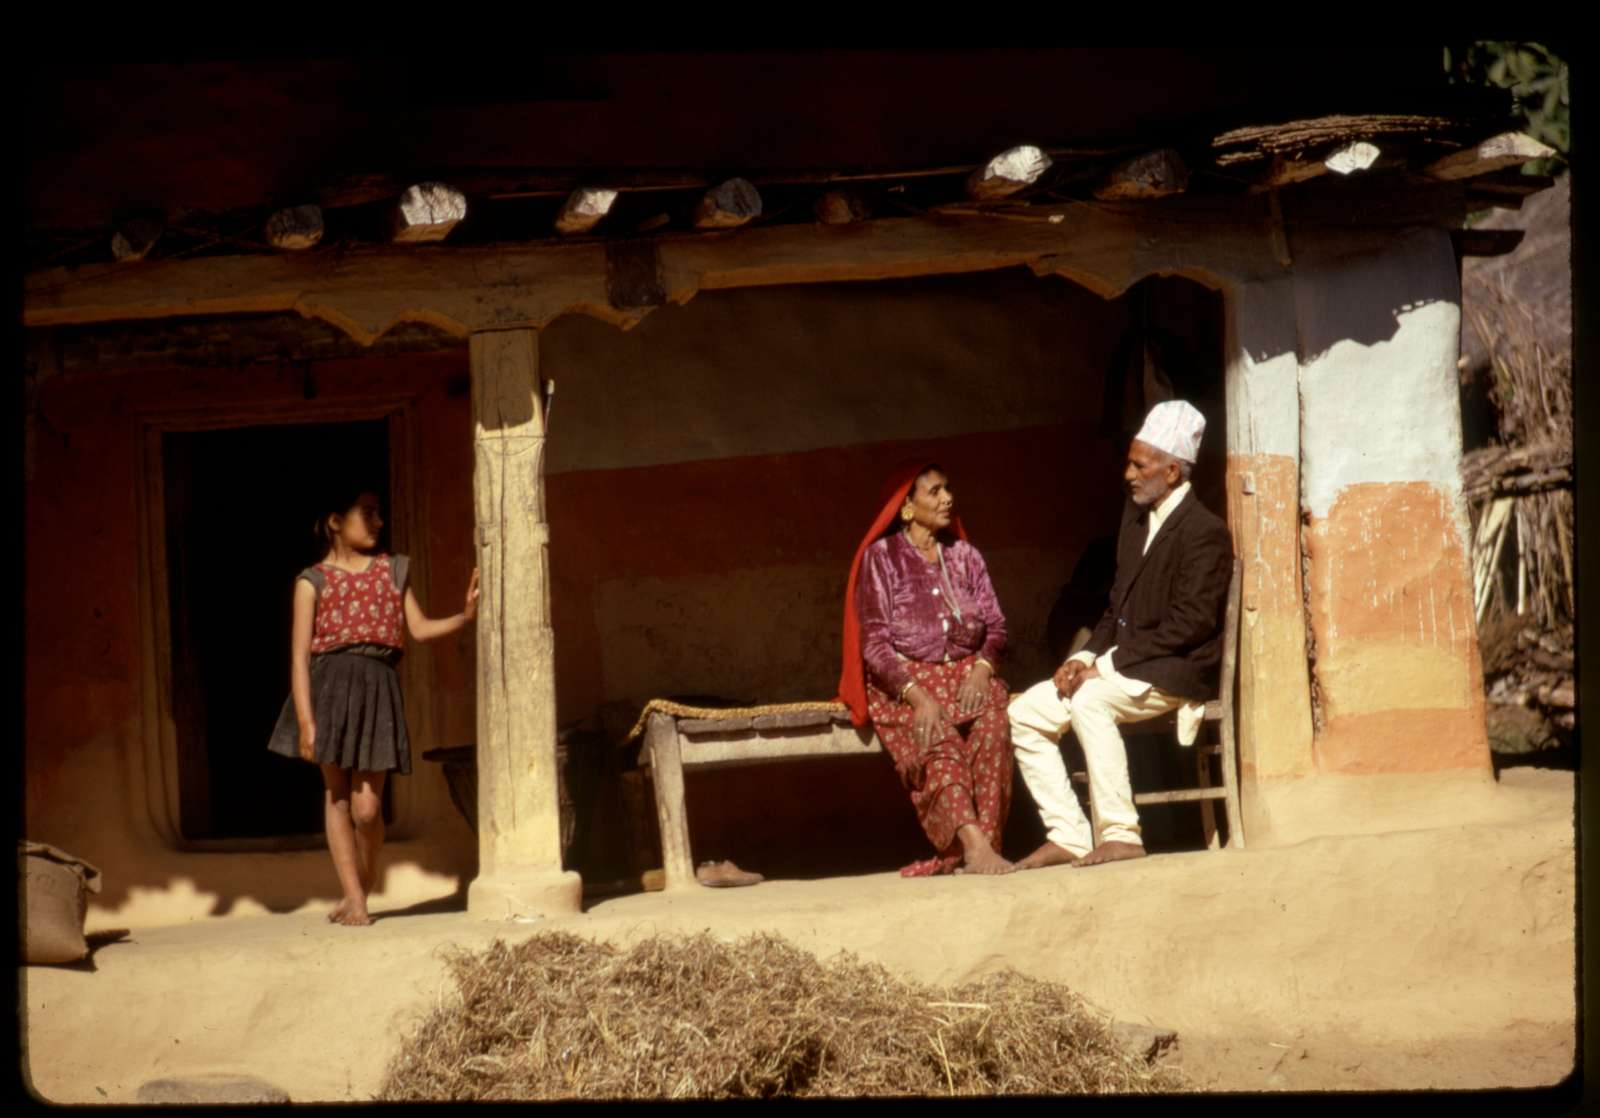 [Nepalese family outside of clay home, Sikkim]